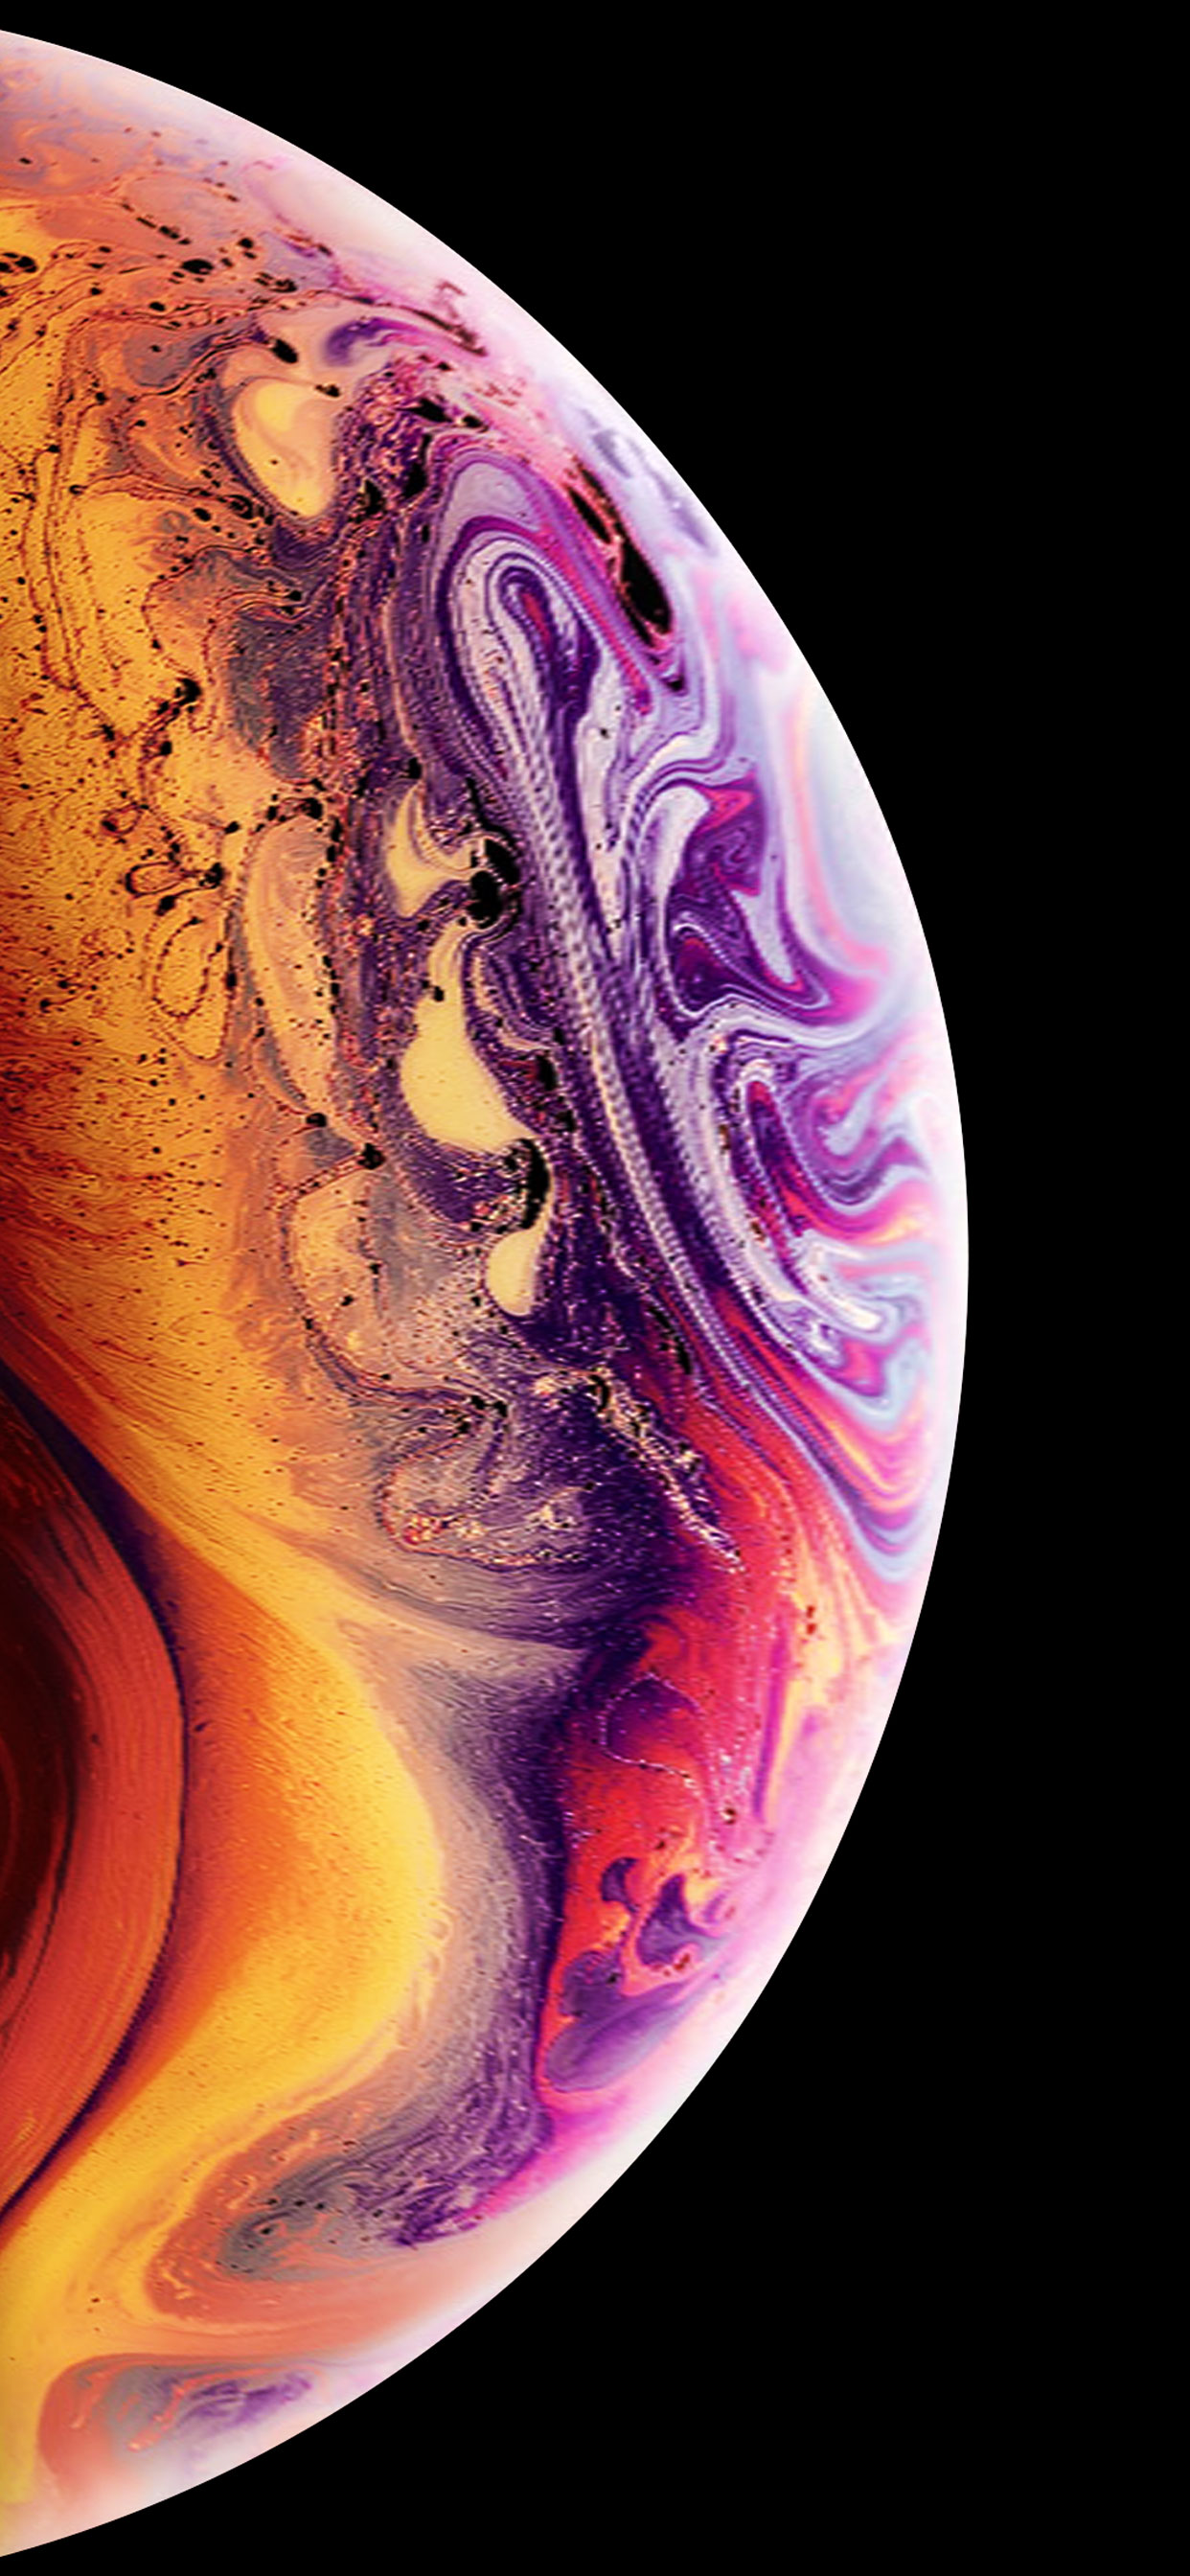 30 Cool High Quality Iphone Xs Max Wallpapers Backgrounds